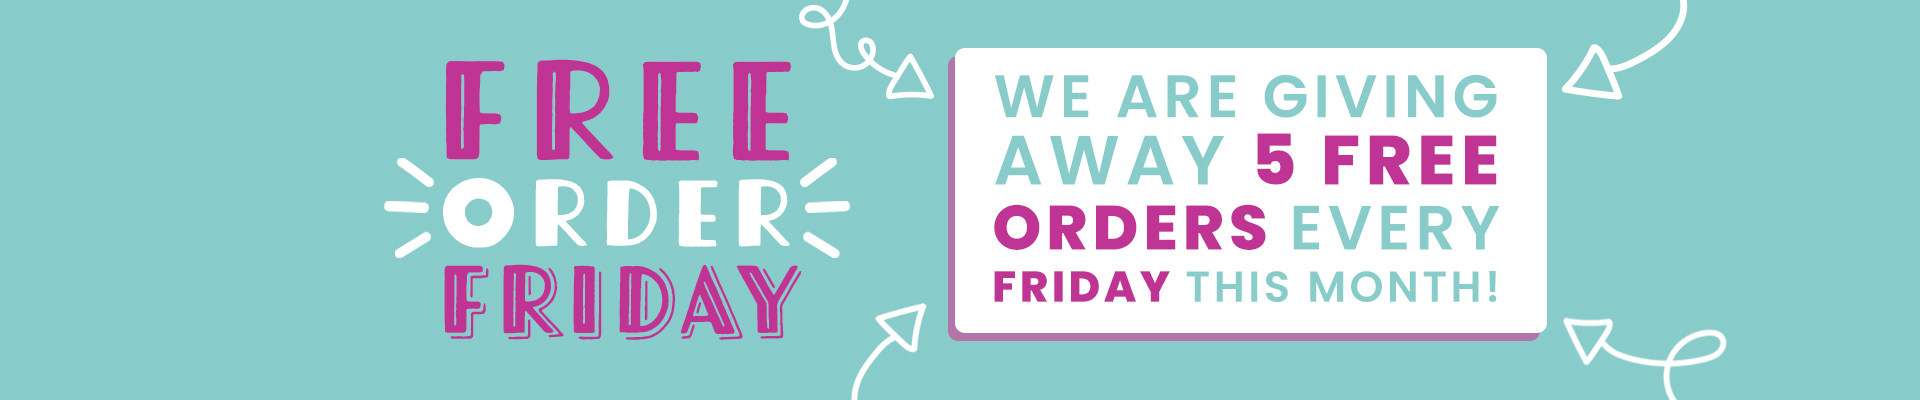 ROOV FREE ORDER FRIDAY